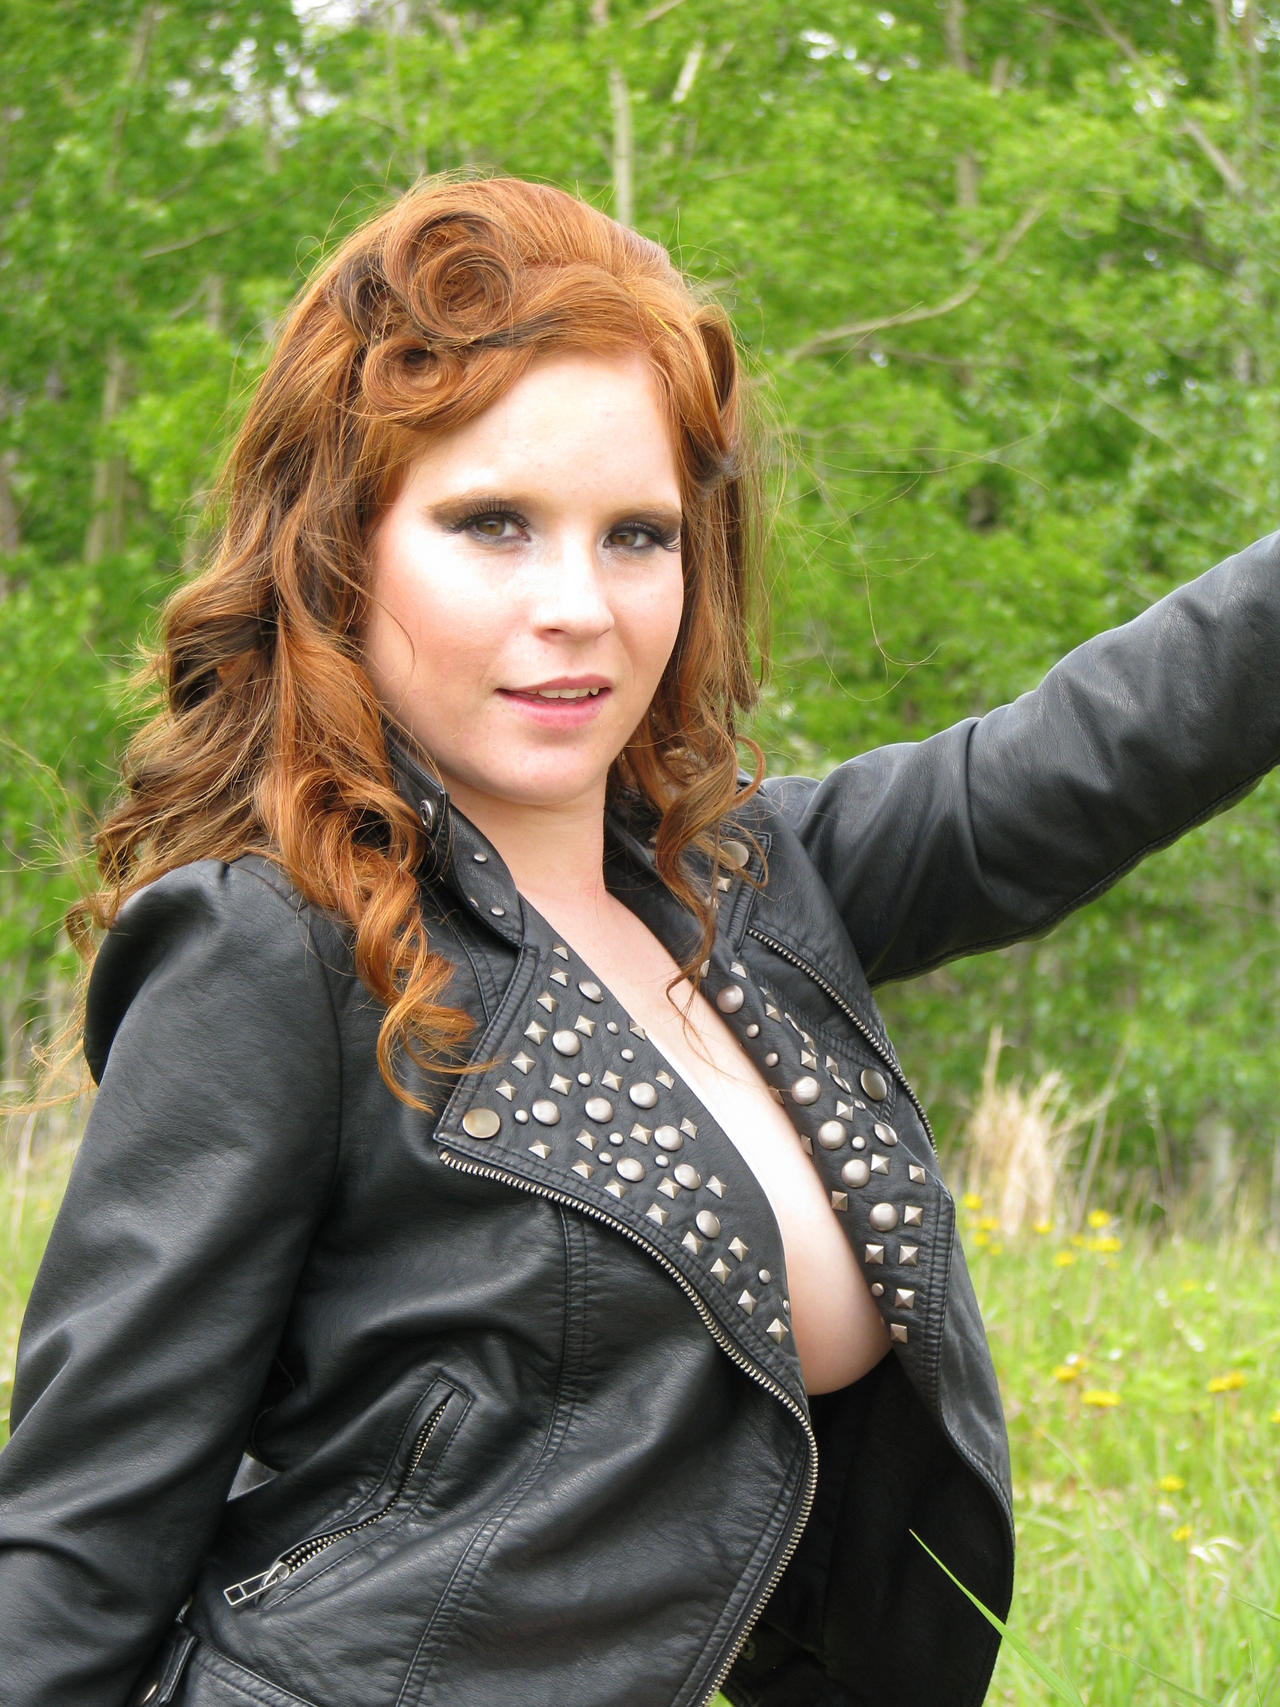 Leather and breasts-Stock